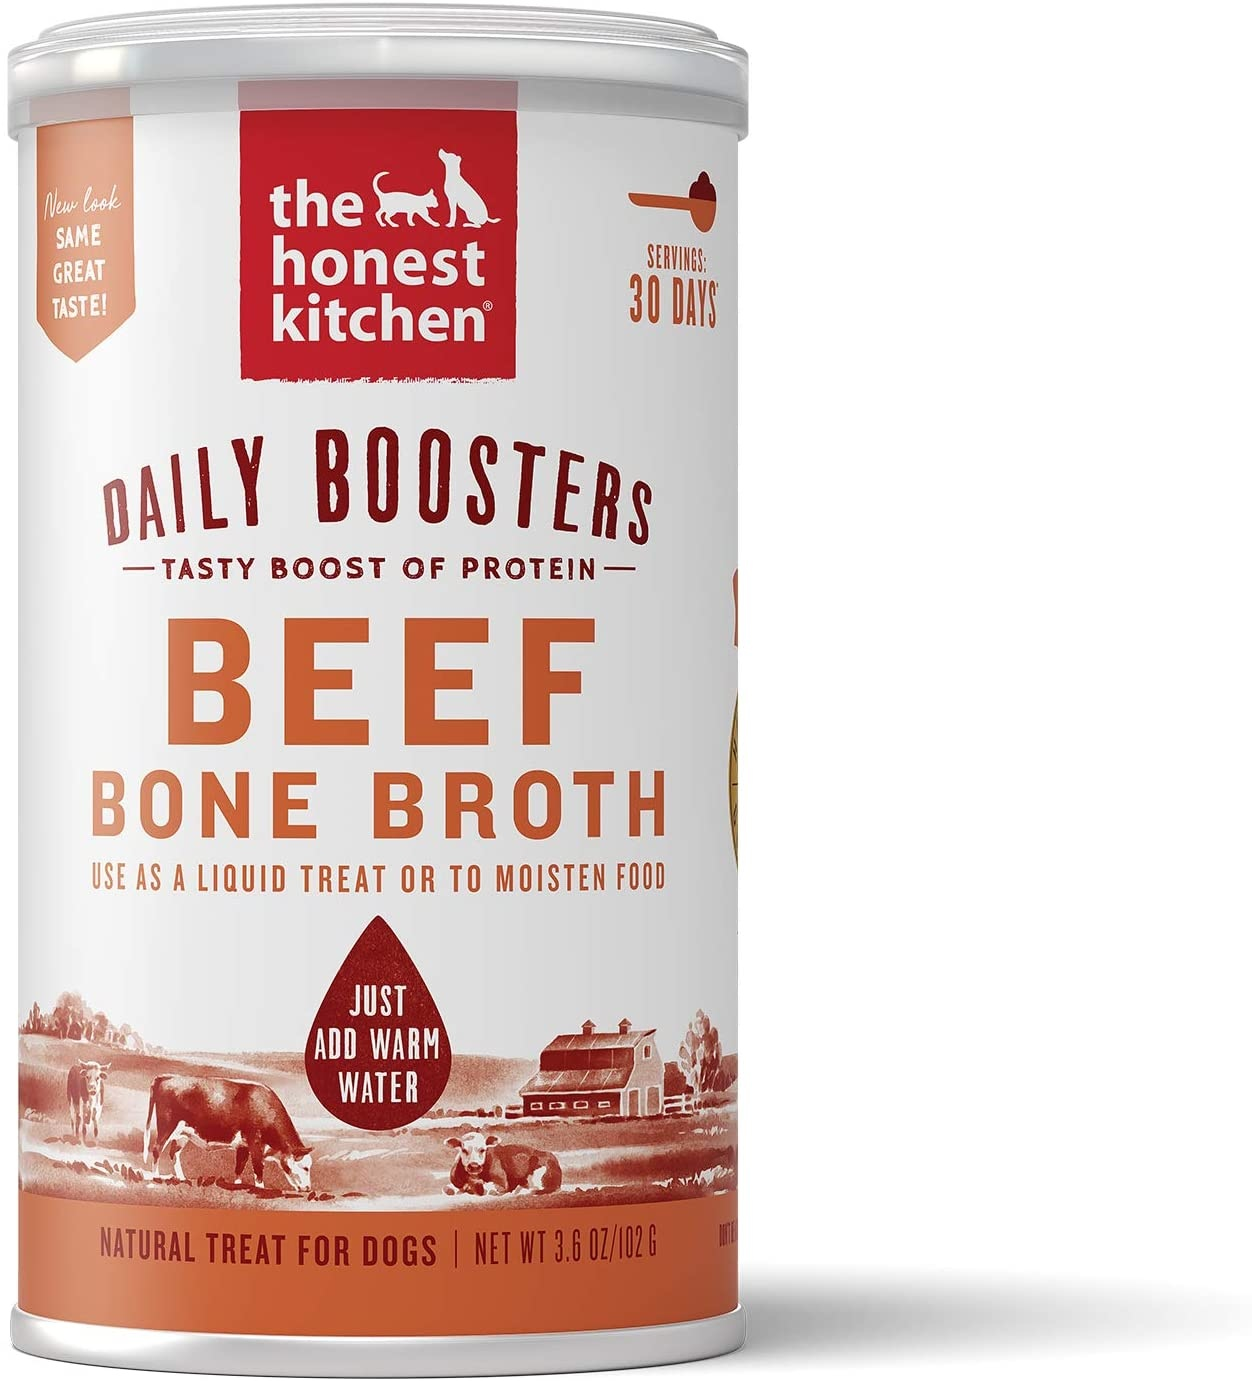 The Honest Kitchen The Honest Kitchen Daily Boosters Beef Bone Broth 3.6oz